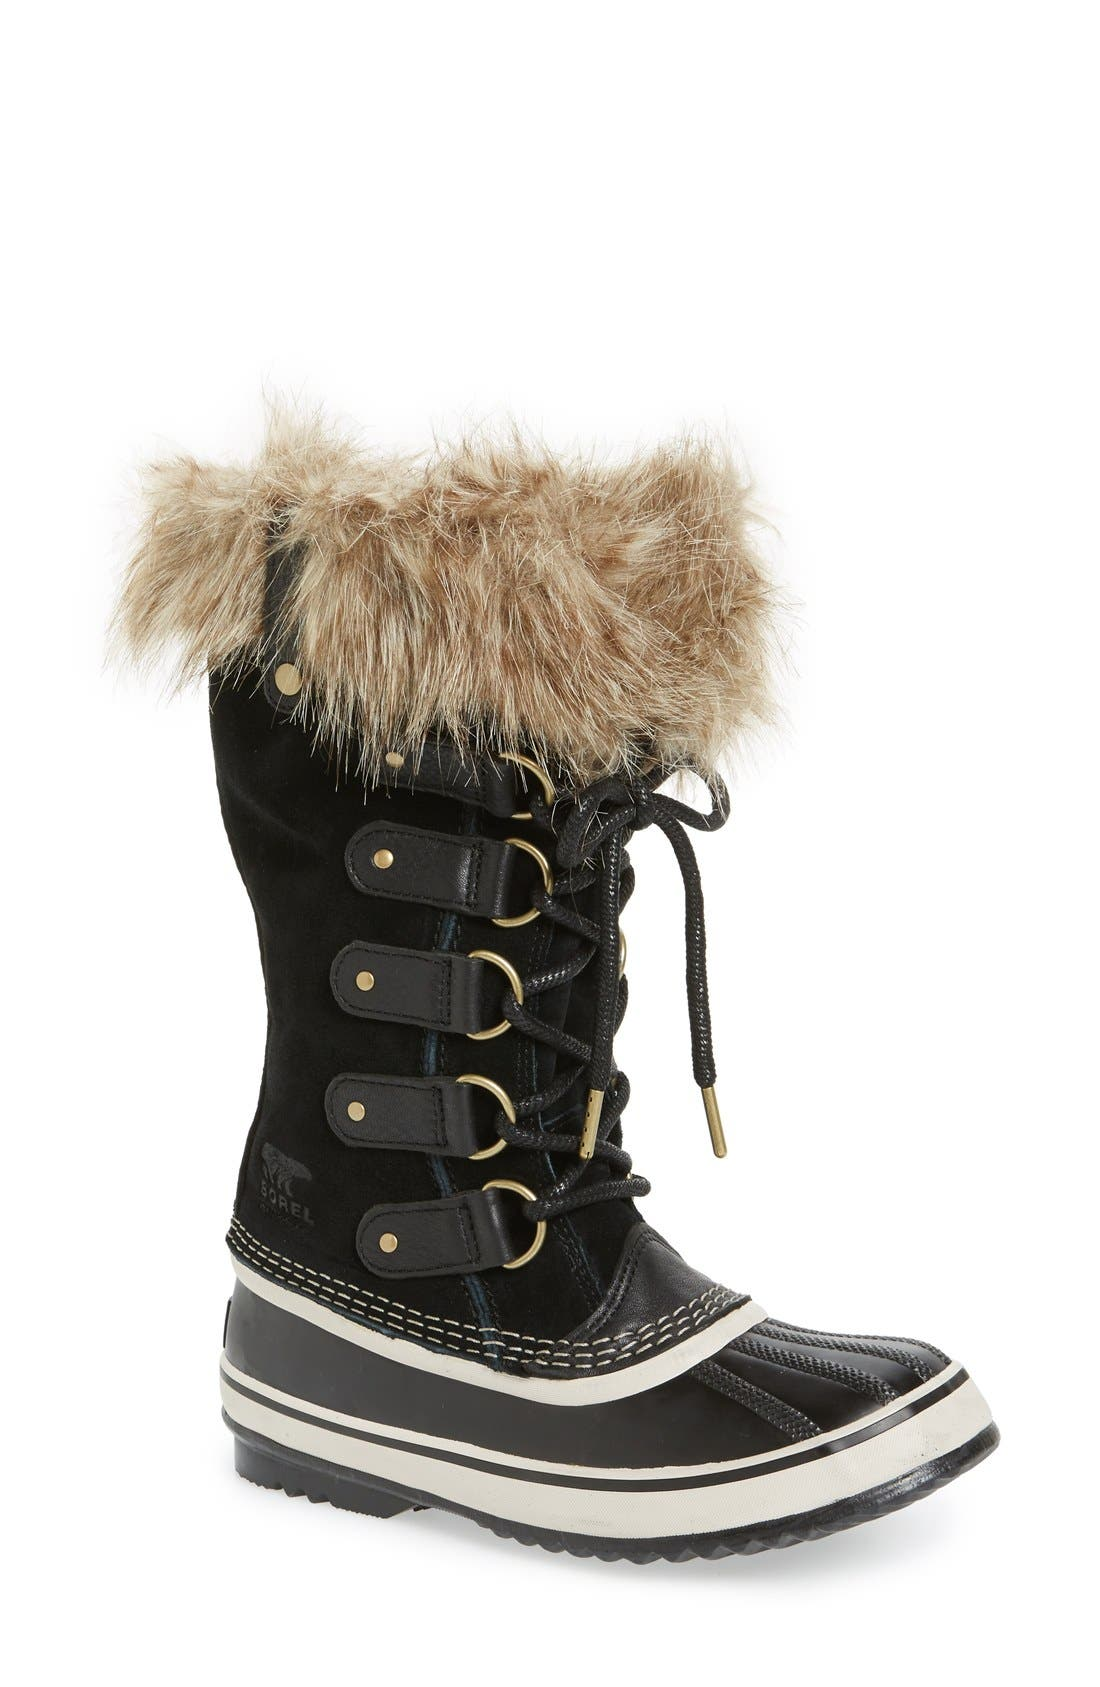 'Joan of Arctic' Waterproof Snow Boot,                         Main,                         color, BLACK/ STONE